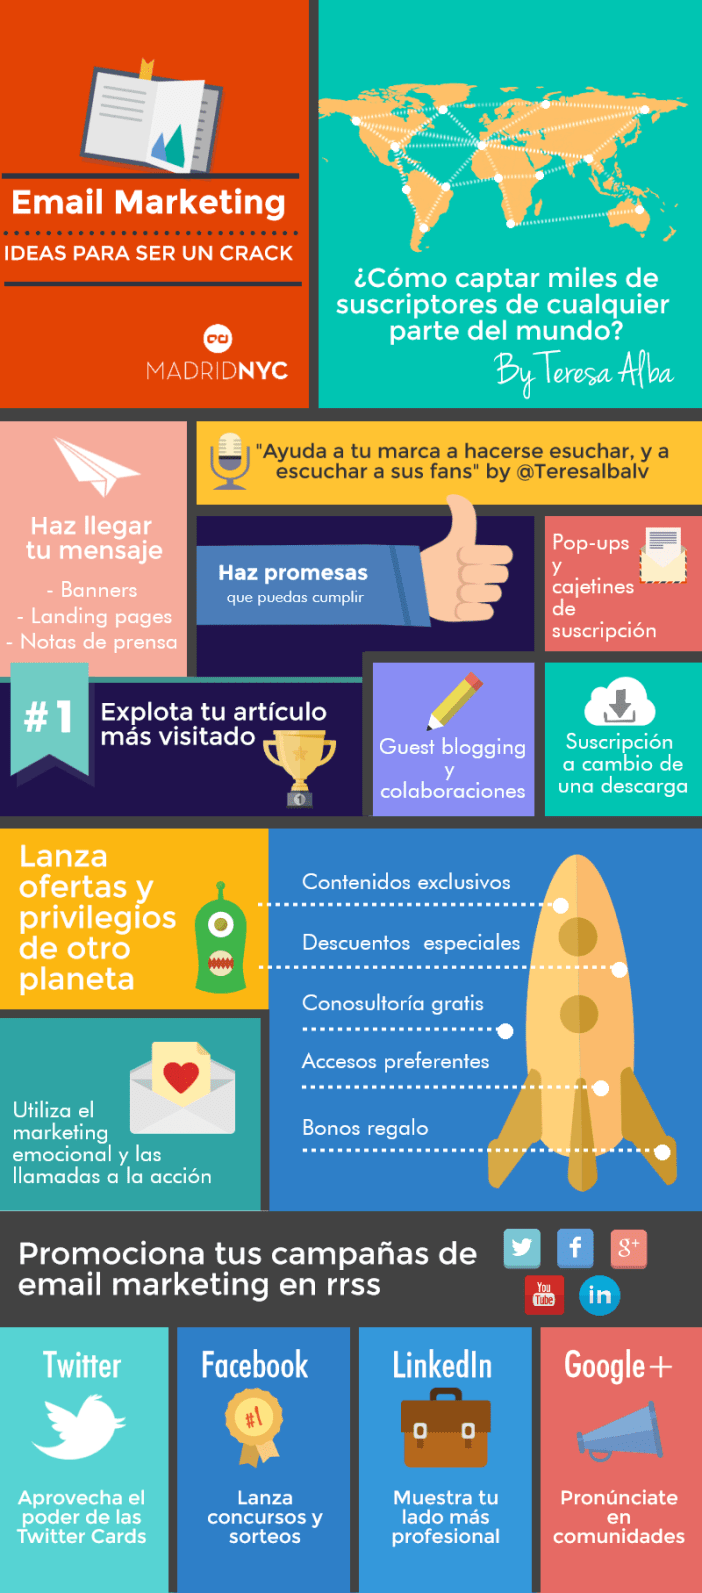 guia de email marketing para conseguir suscriptores - infografía